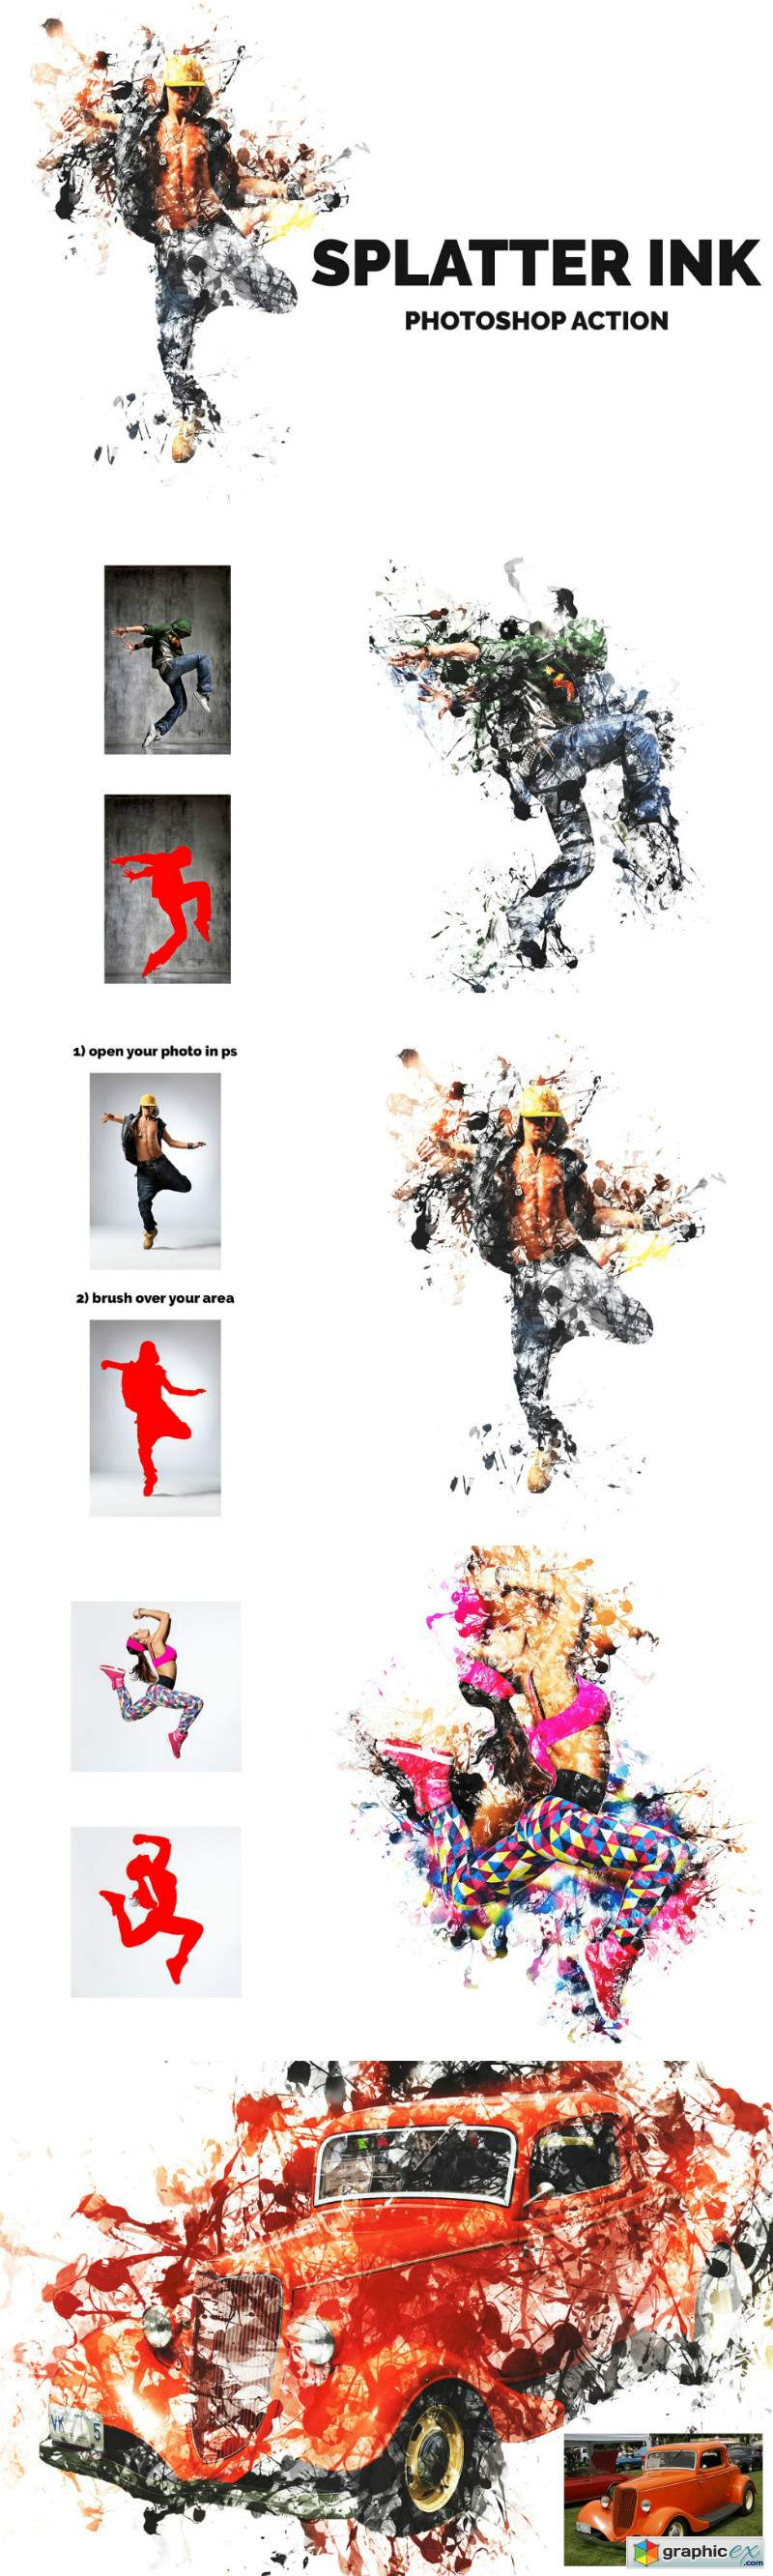 splatter ink photoshop action 3593546  u00bb free download vector stock image photoshop icon